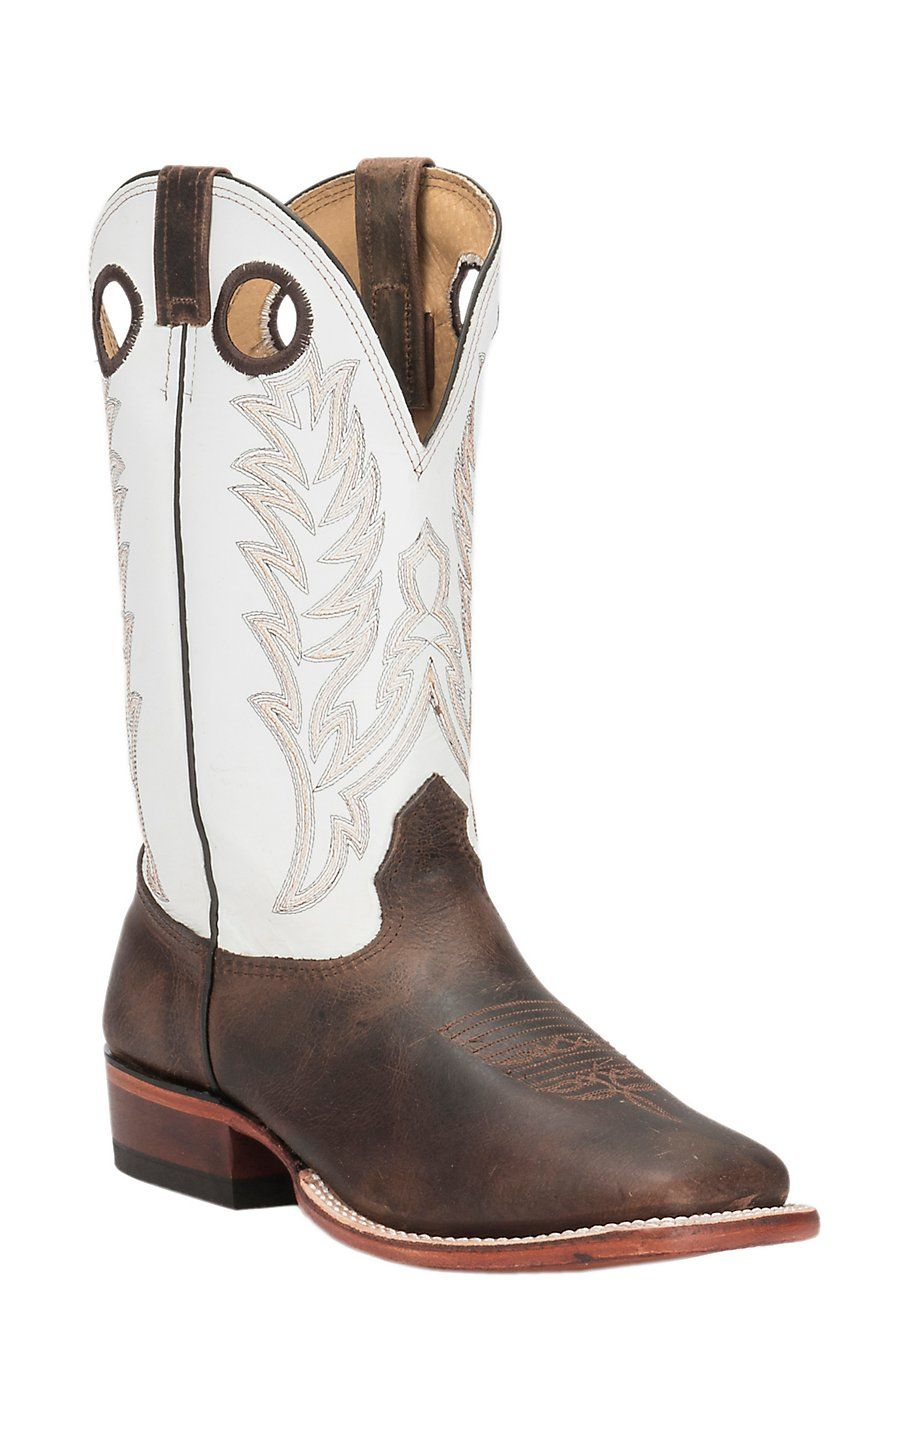 87bd80ca1ee Cavender's Men's Chocolate Rowdy with White Top Double Welt Square ...